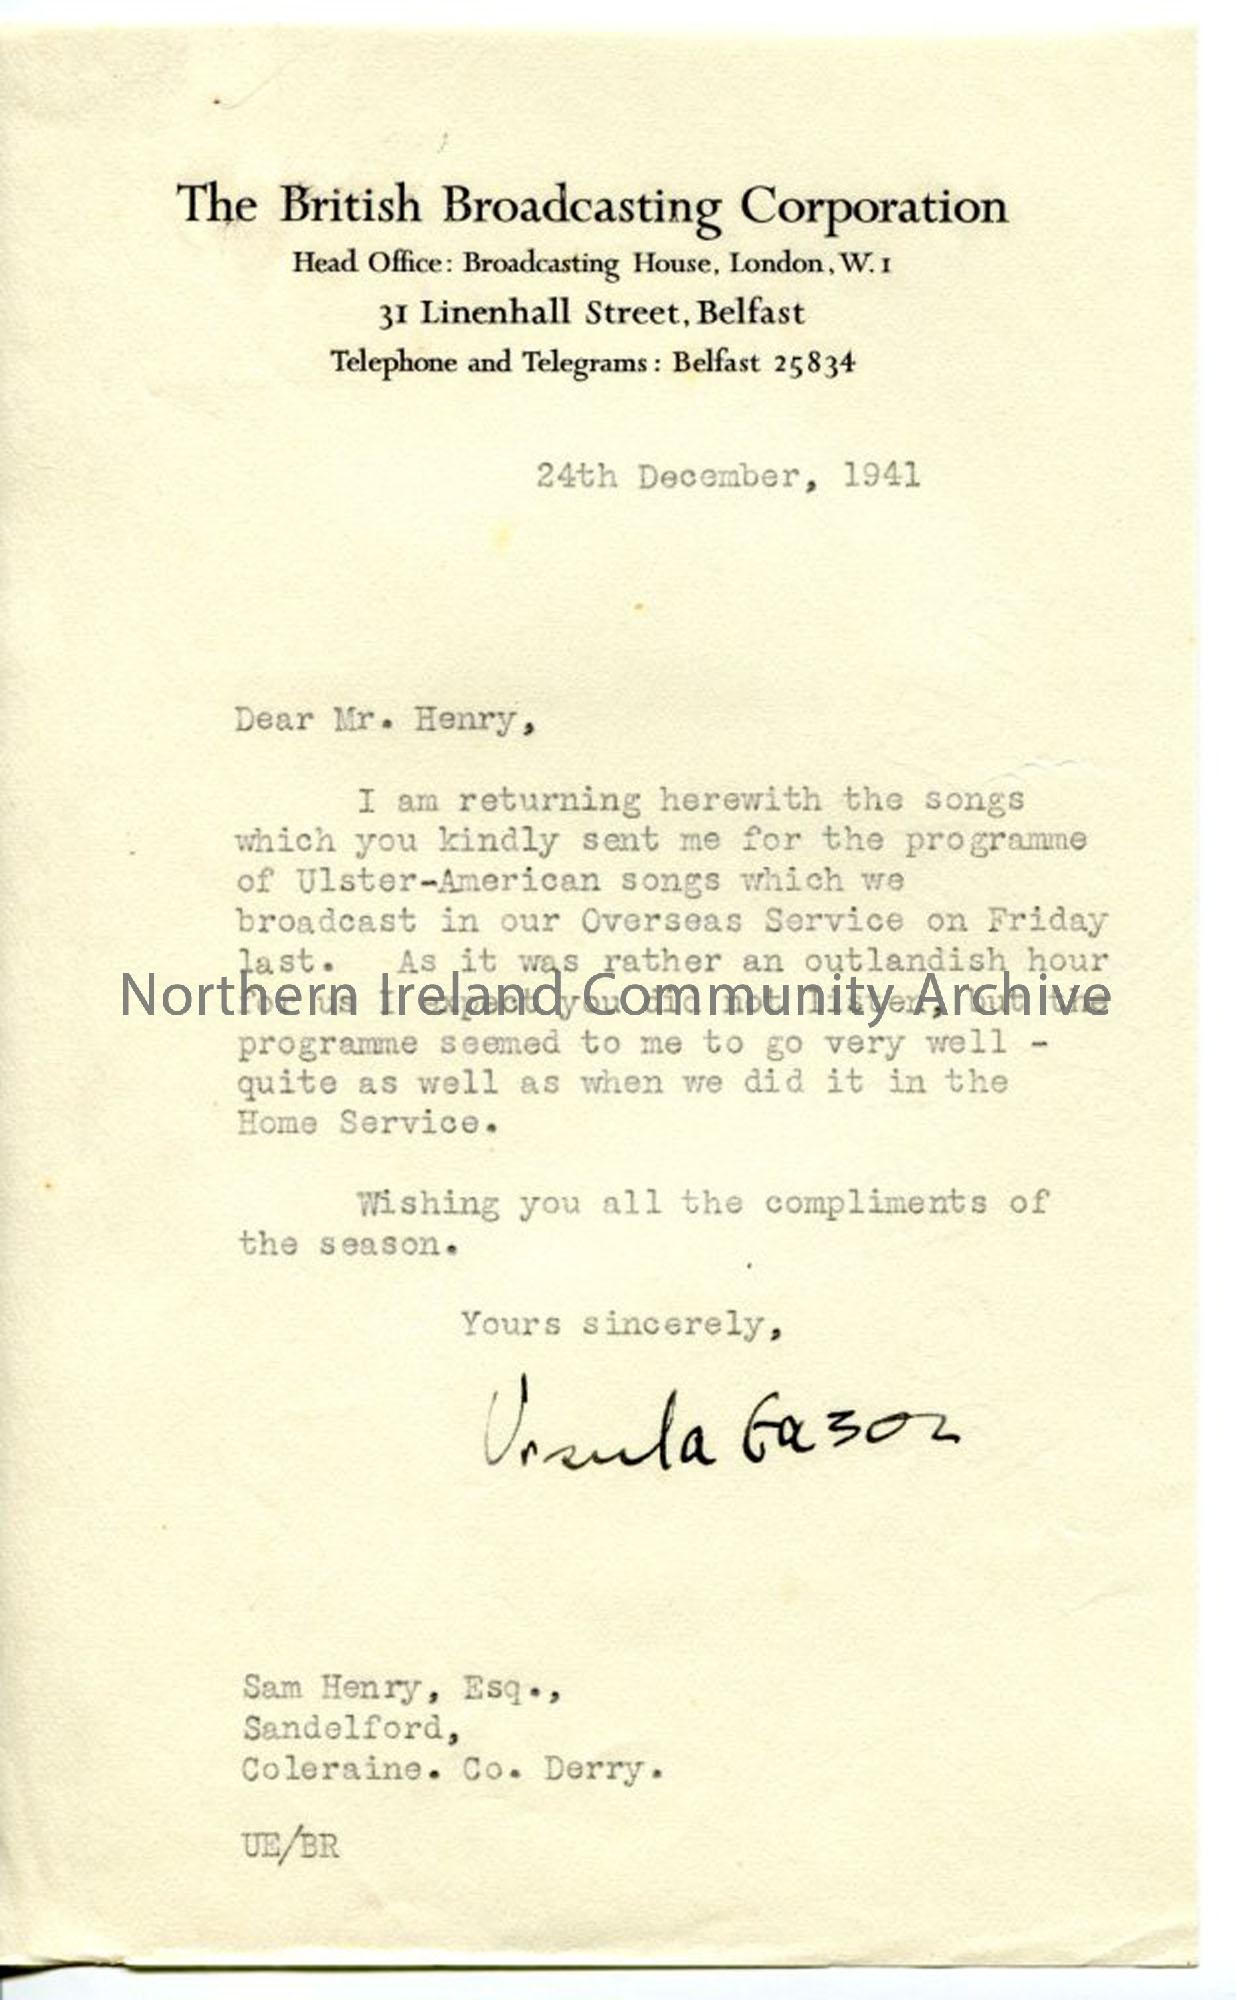 Letter from Ursula Eason, dated 24.12.1941